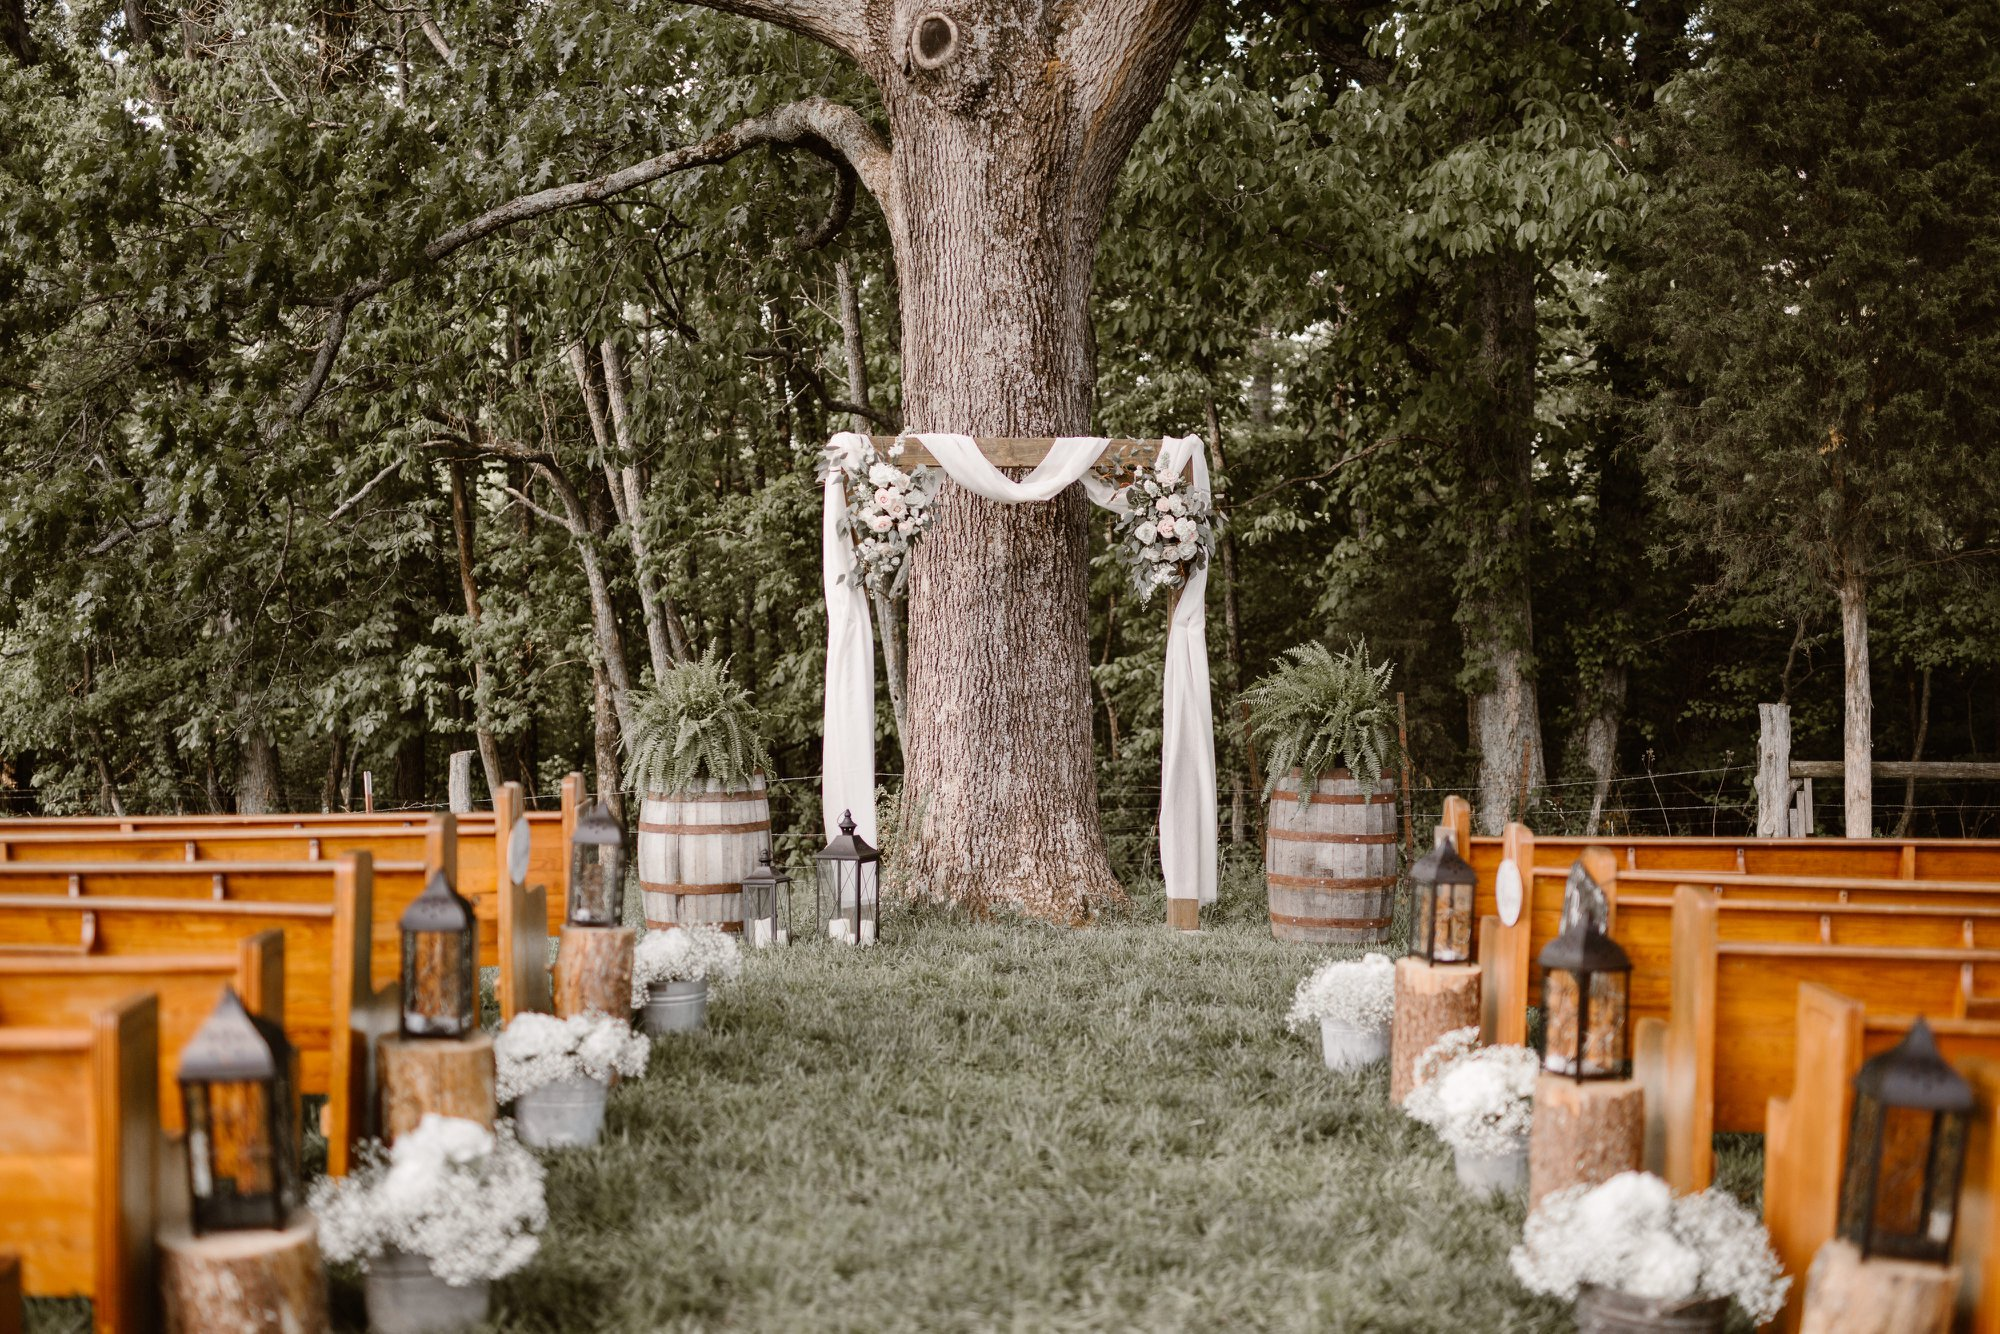 ceremony set up under tree